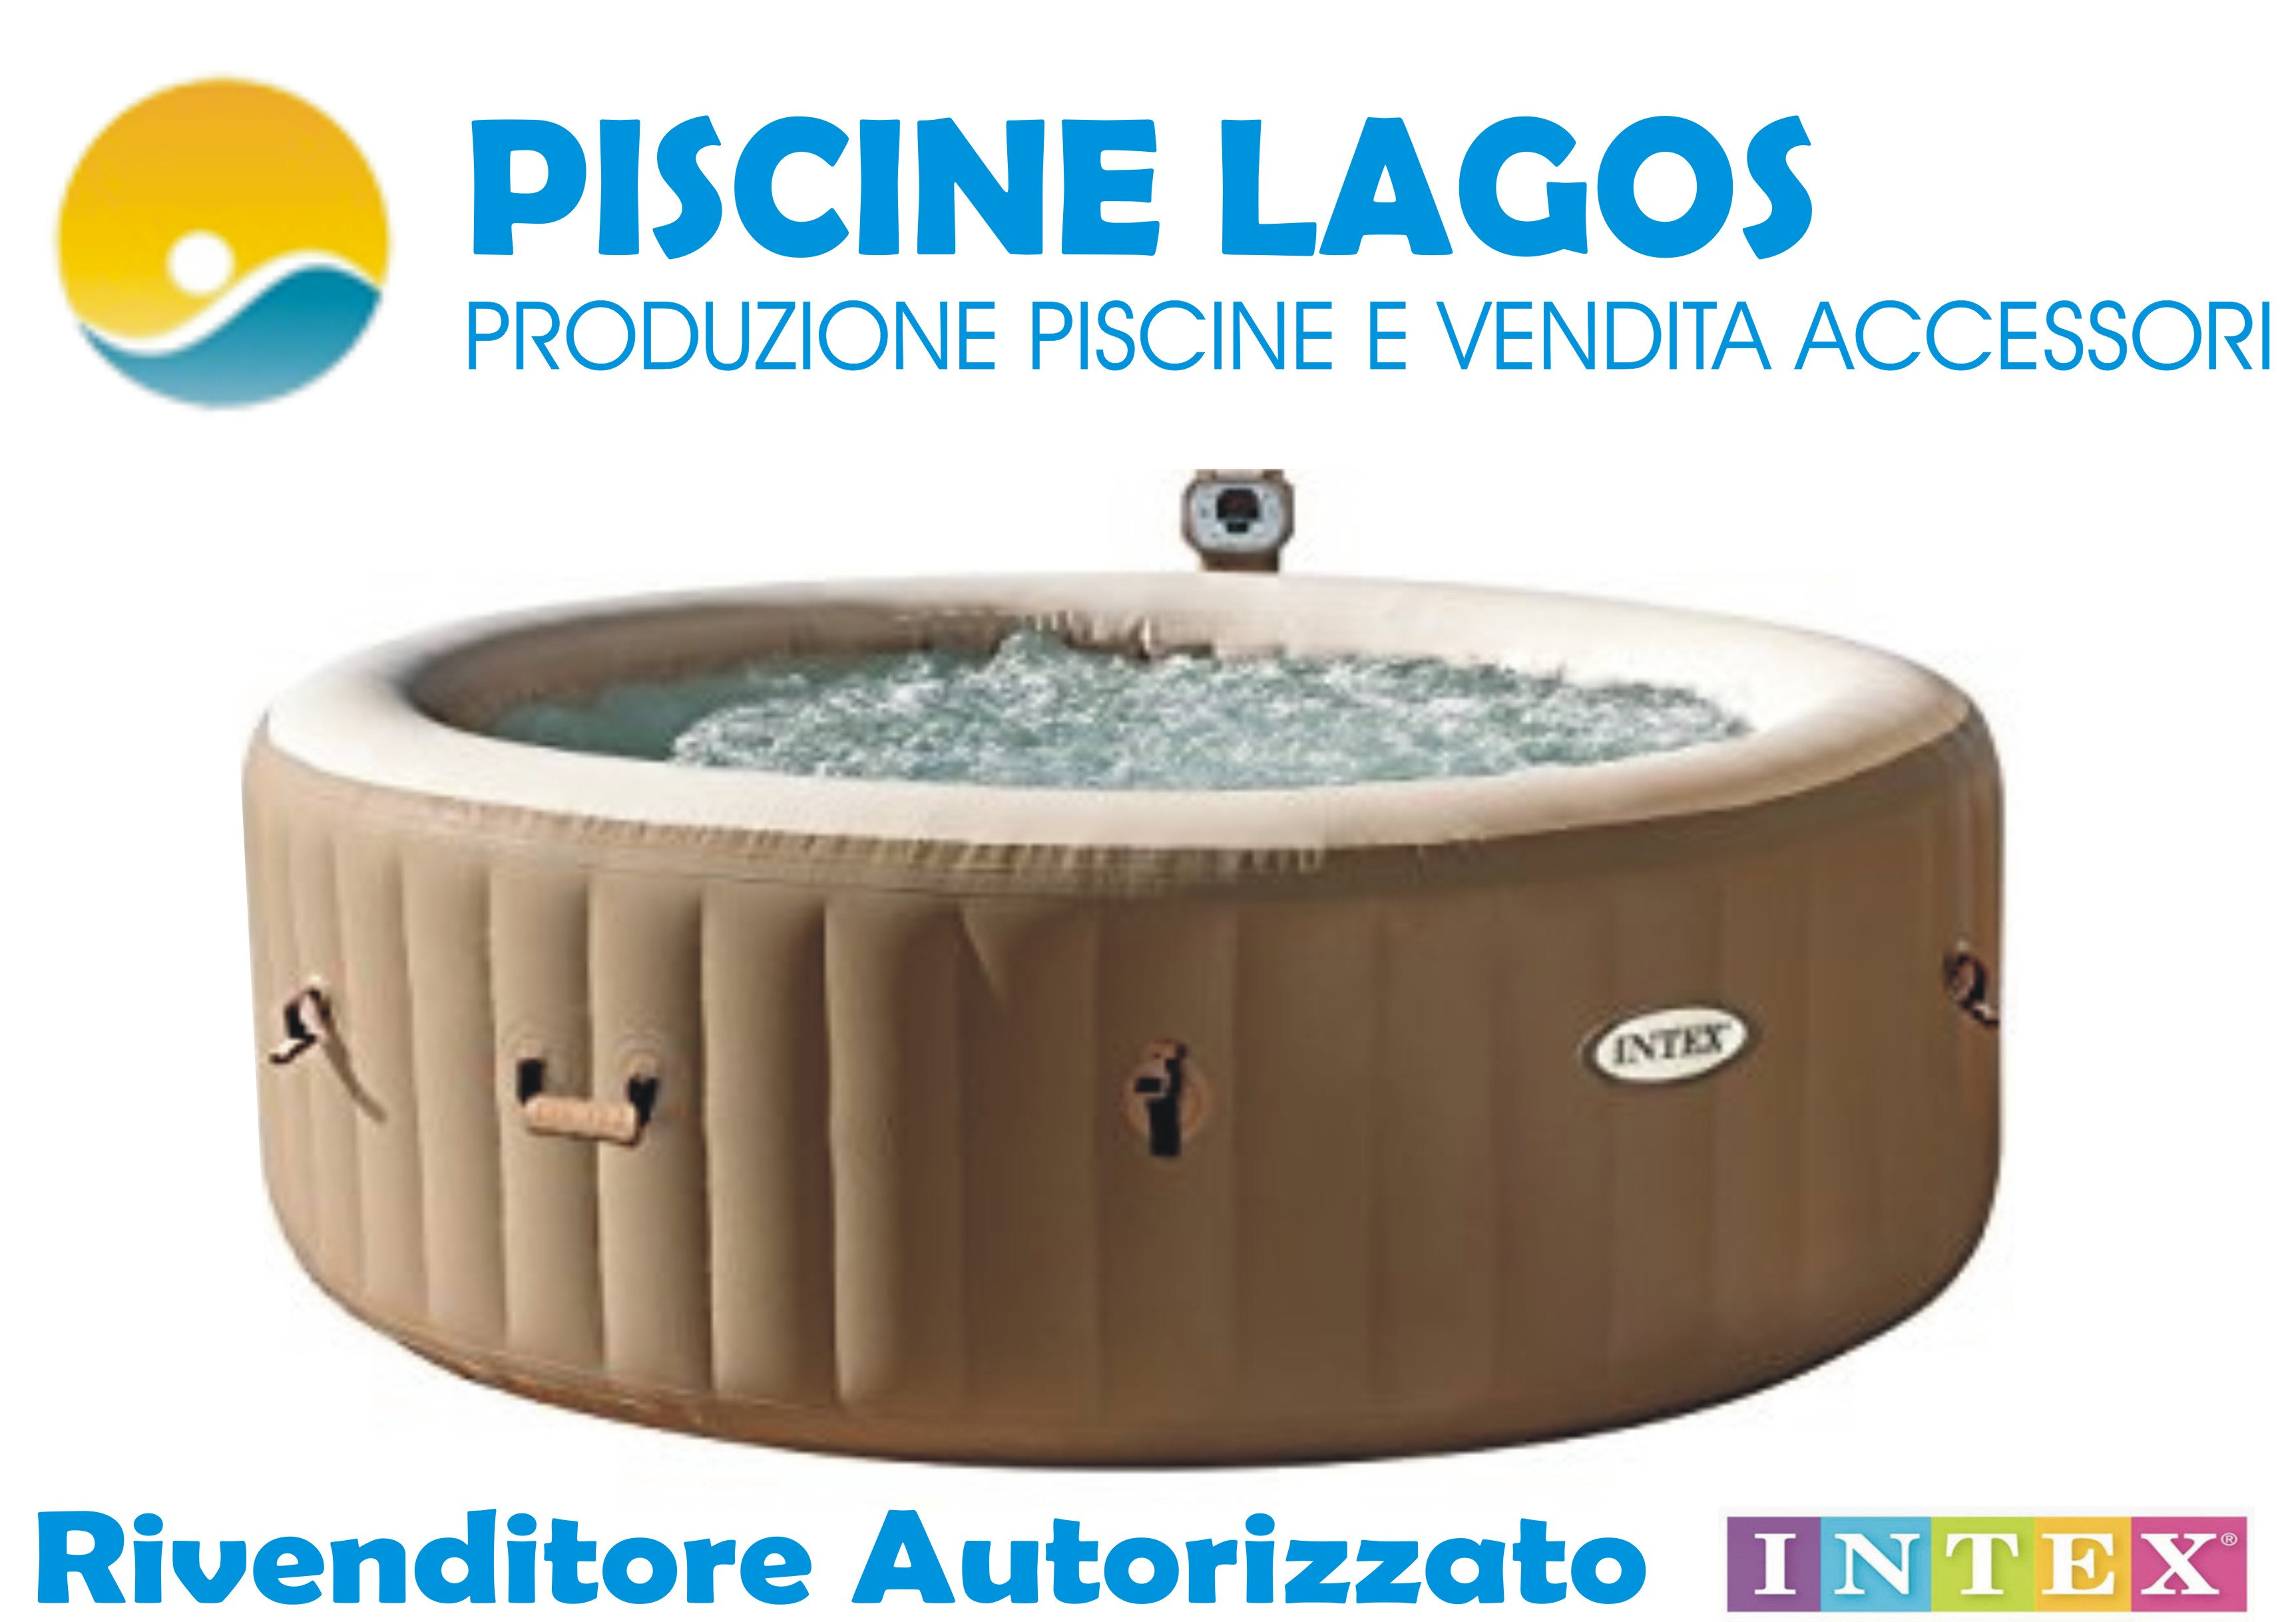 spa idromassaggio intex pure bubble sistema filtrante gonfiabile cod 28404 piscine lagos. Black Bedroom Furniture Sets. Home Design Ideas